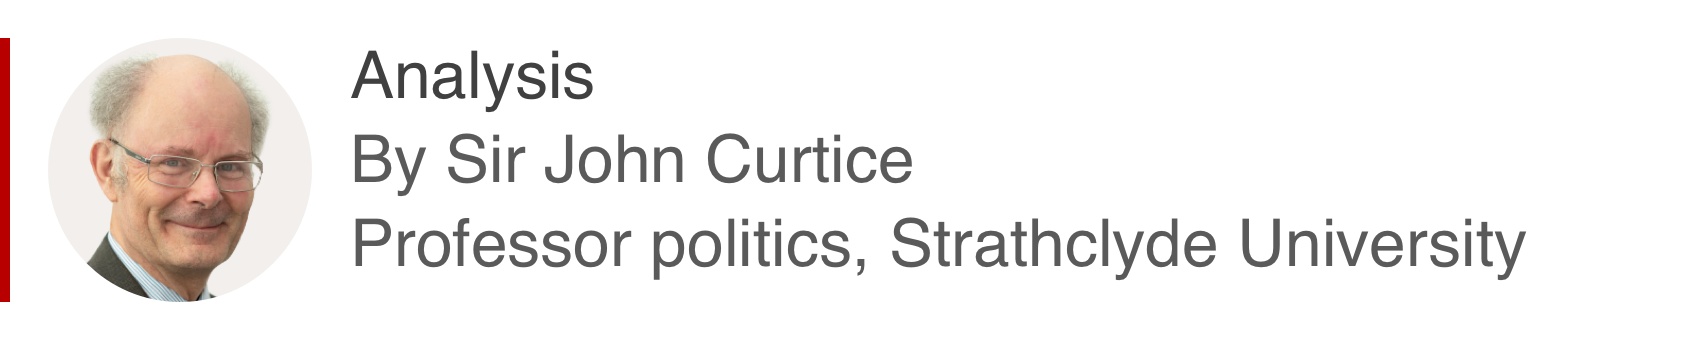 Analysis box by Sir John Curtice, professor politics, Strathclyde University